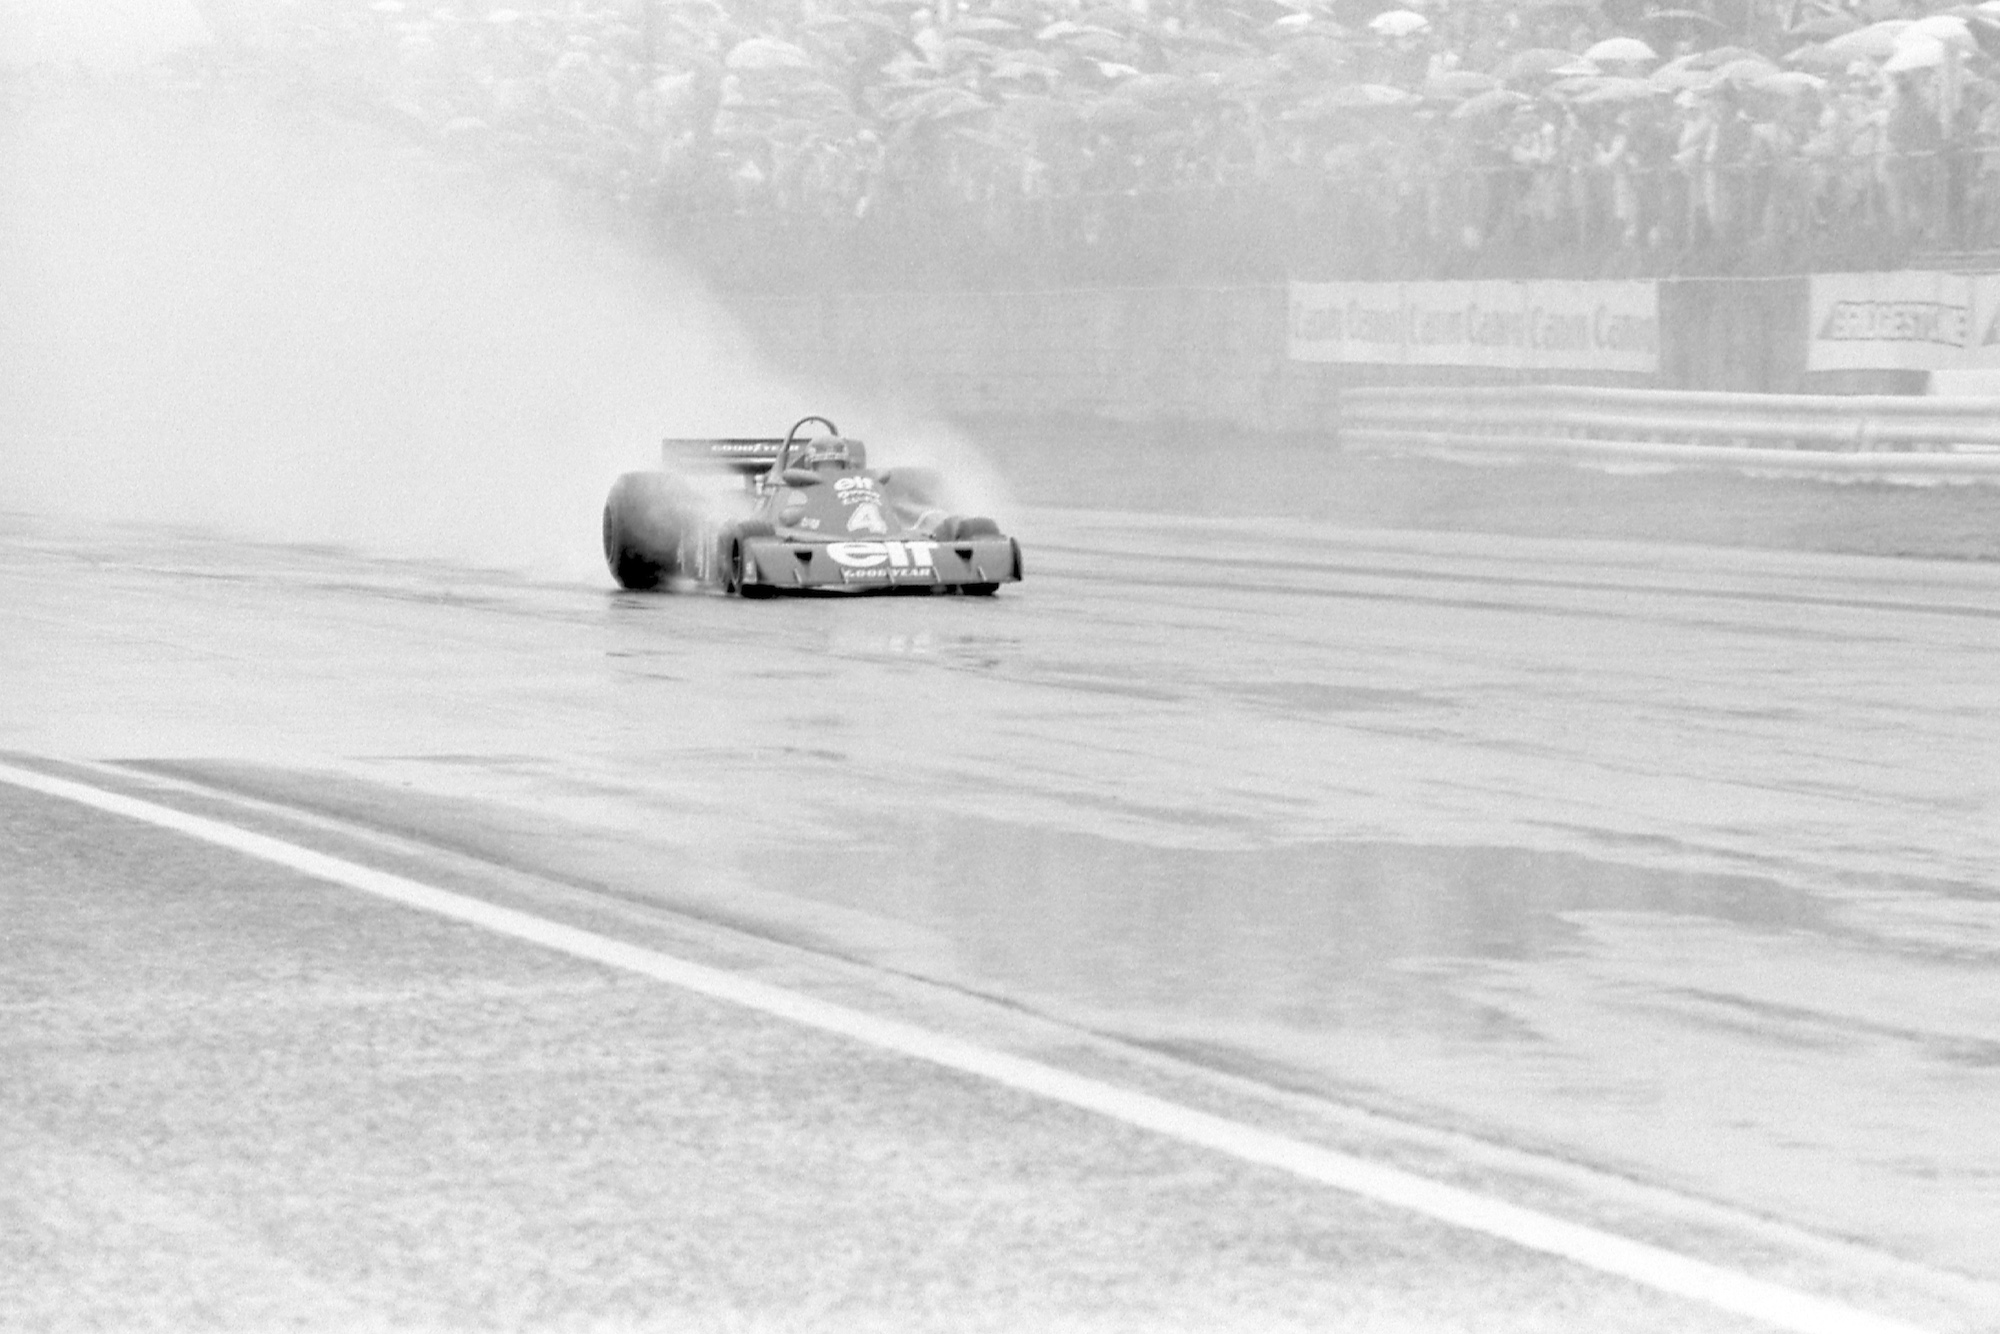 Patrick Depailler and his Tyrrell Ford in the rain at the 1976 Japanese Grand Prix